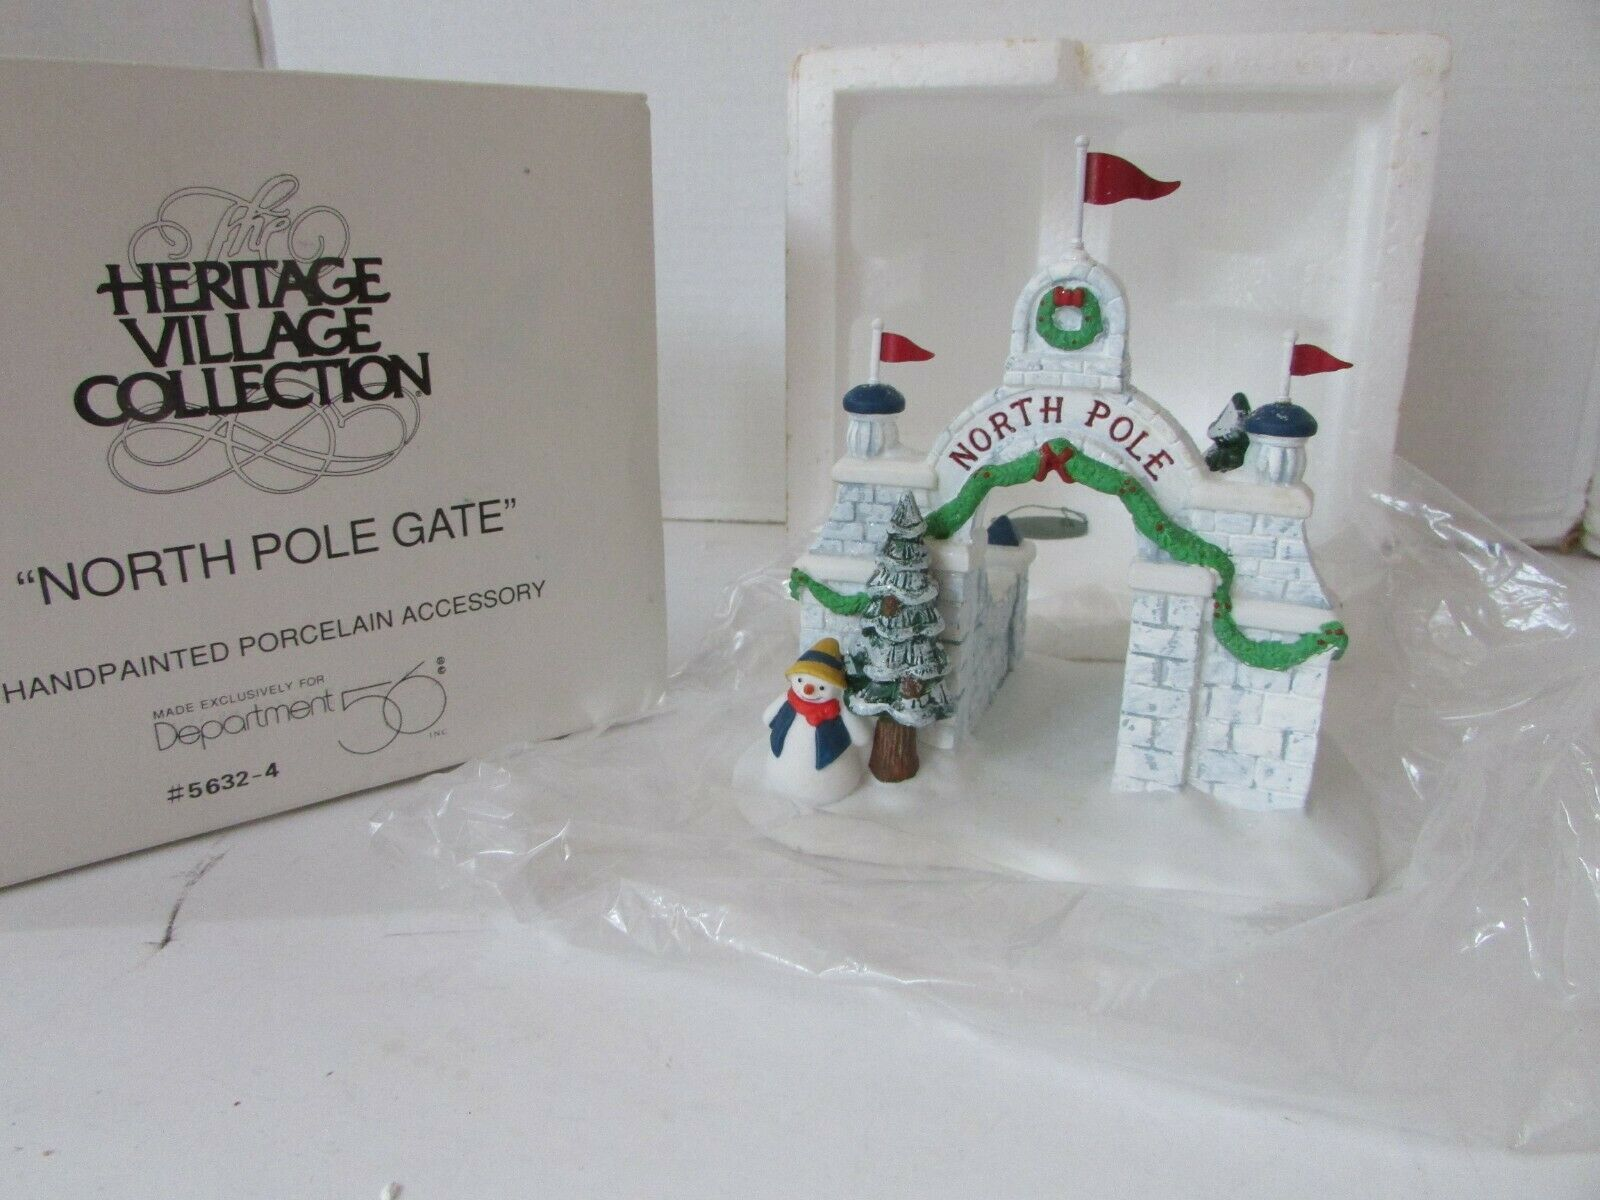 Primary image for DEPT 56 56324 NORTH POLE GATE HERITAGE VILLAGE ACCESSORY D19